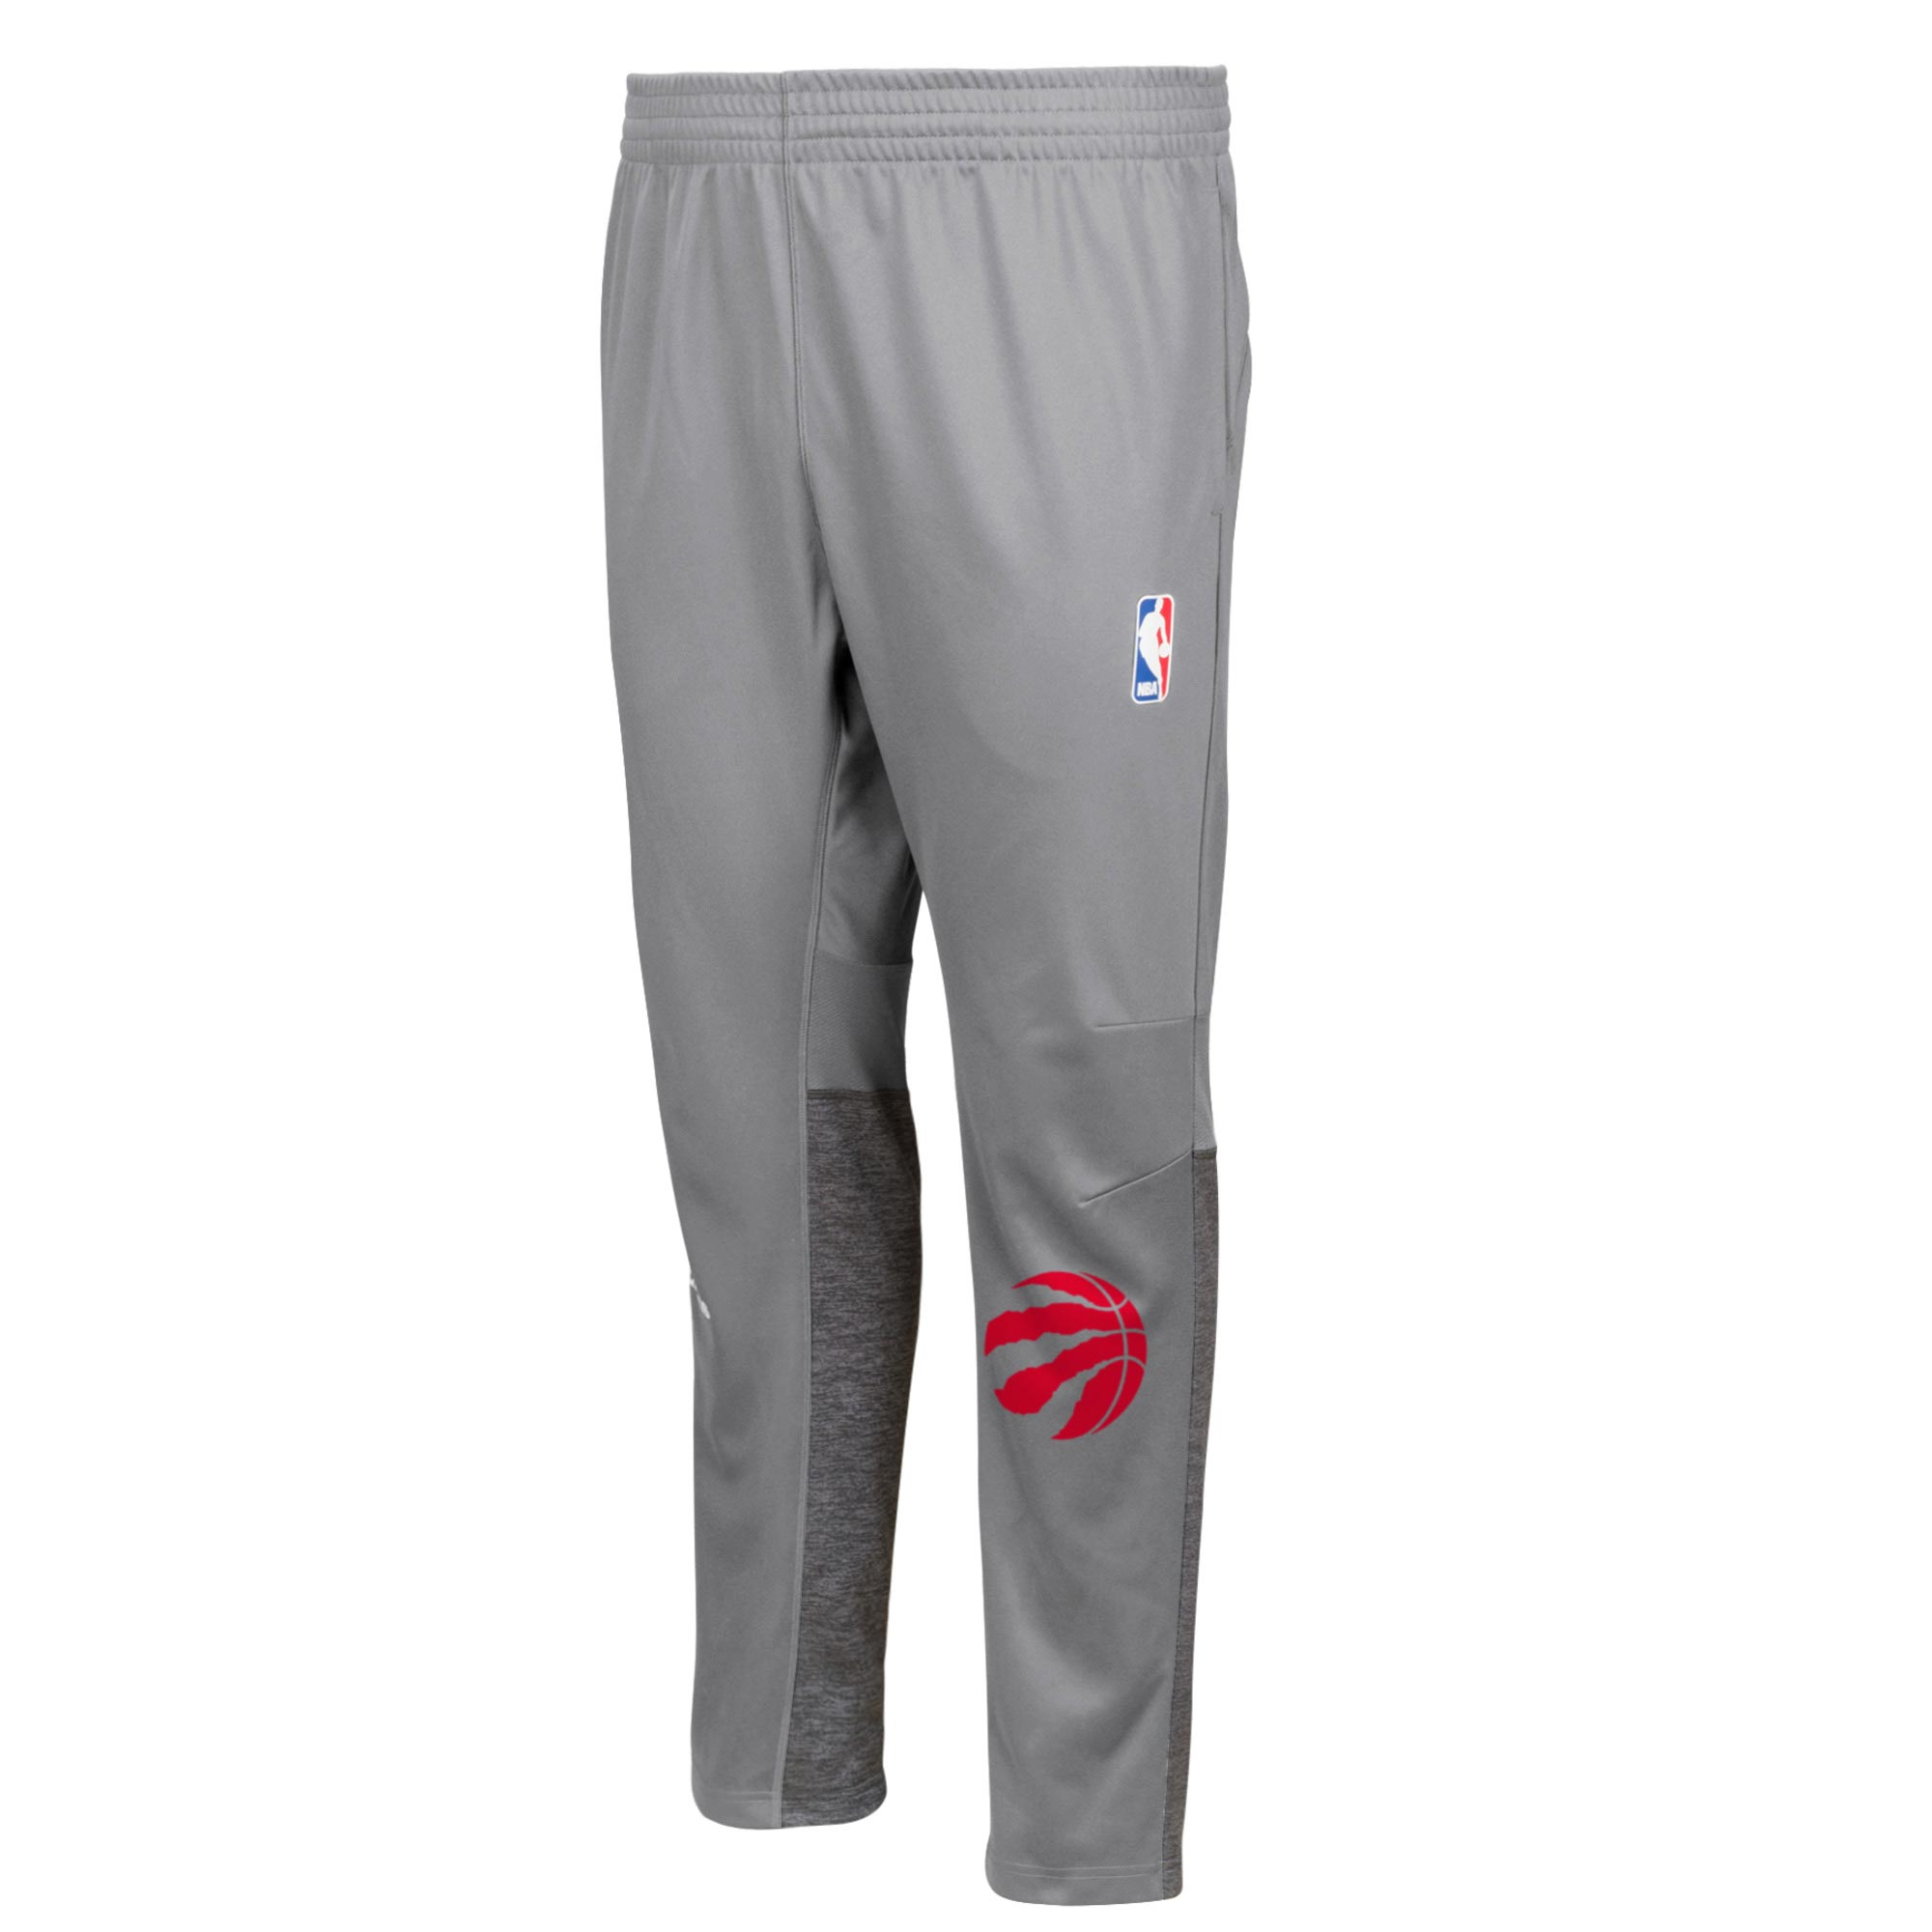 Toronto Raptors On-Court Pant 2016-17